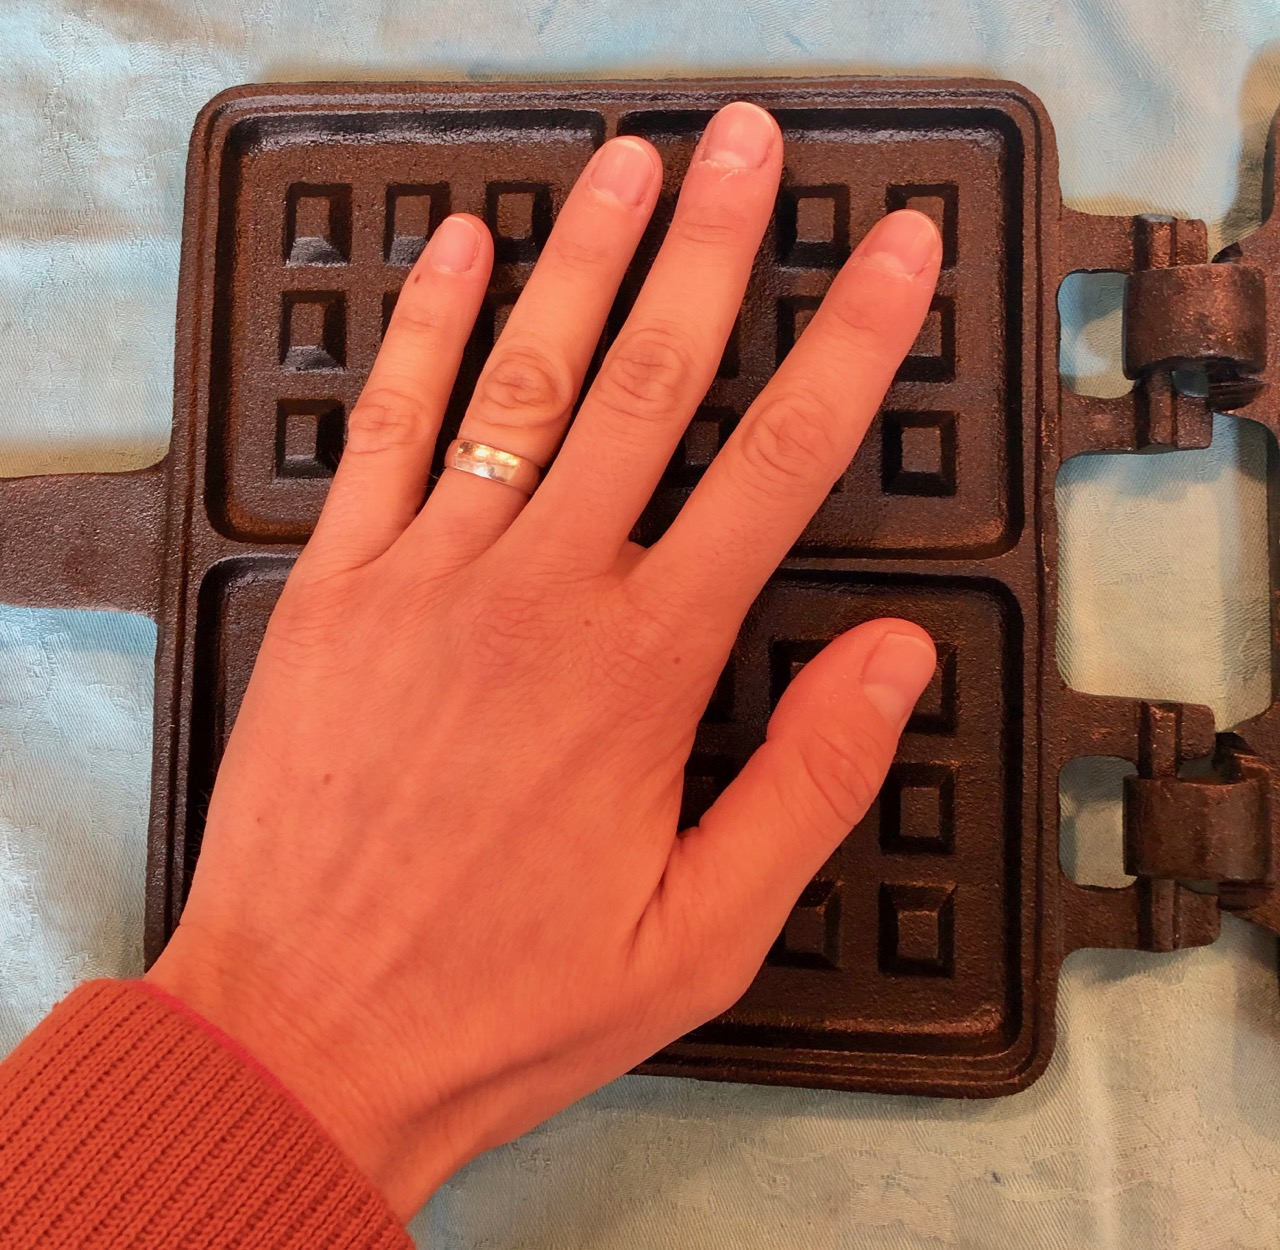 Mind you my hand is on the larger side, but this waffle maker isn'